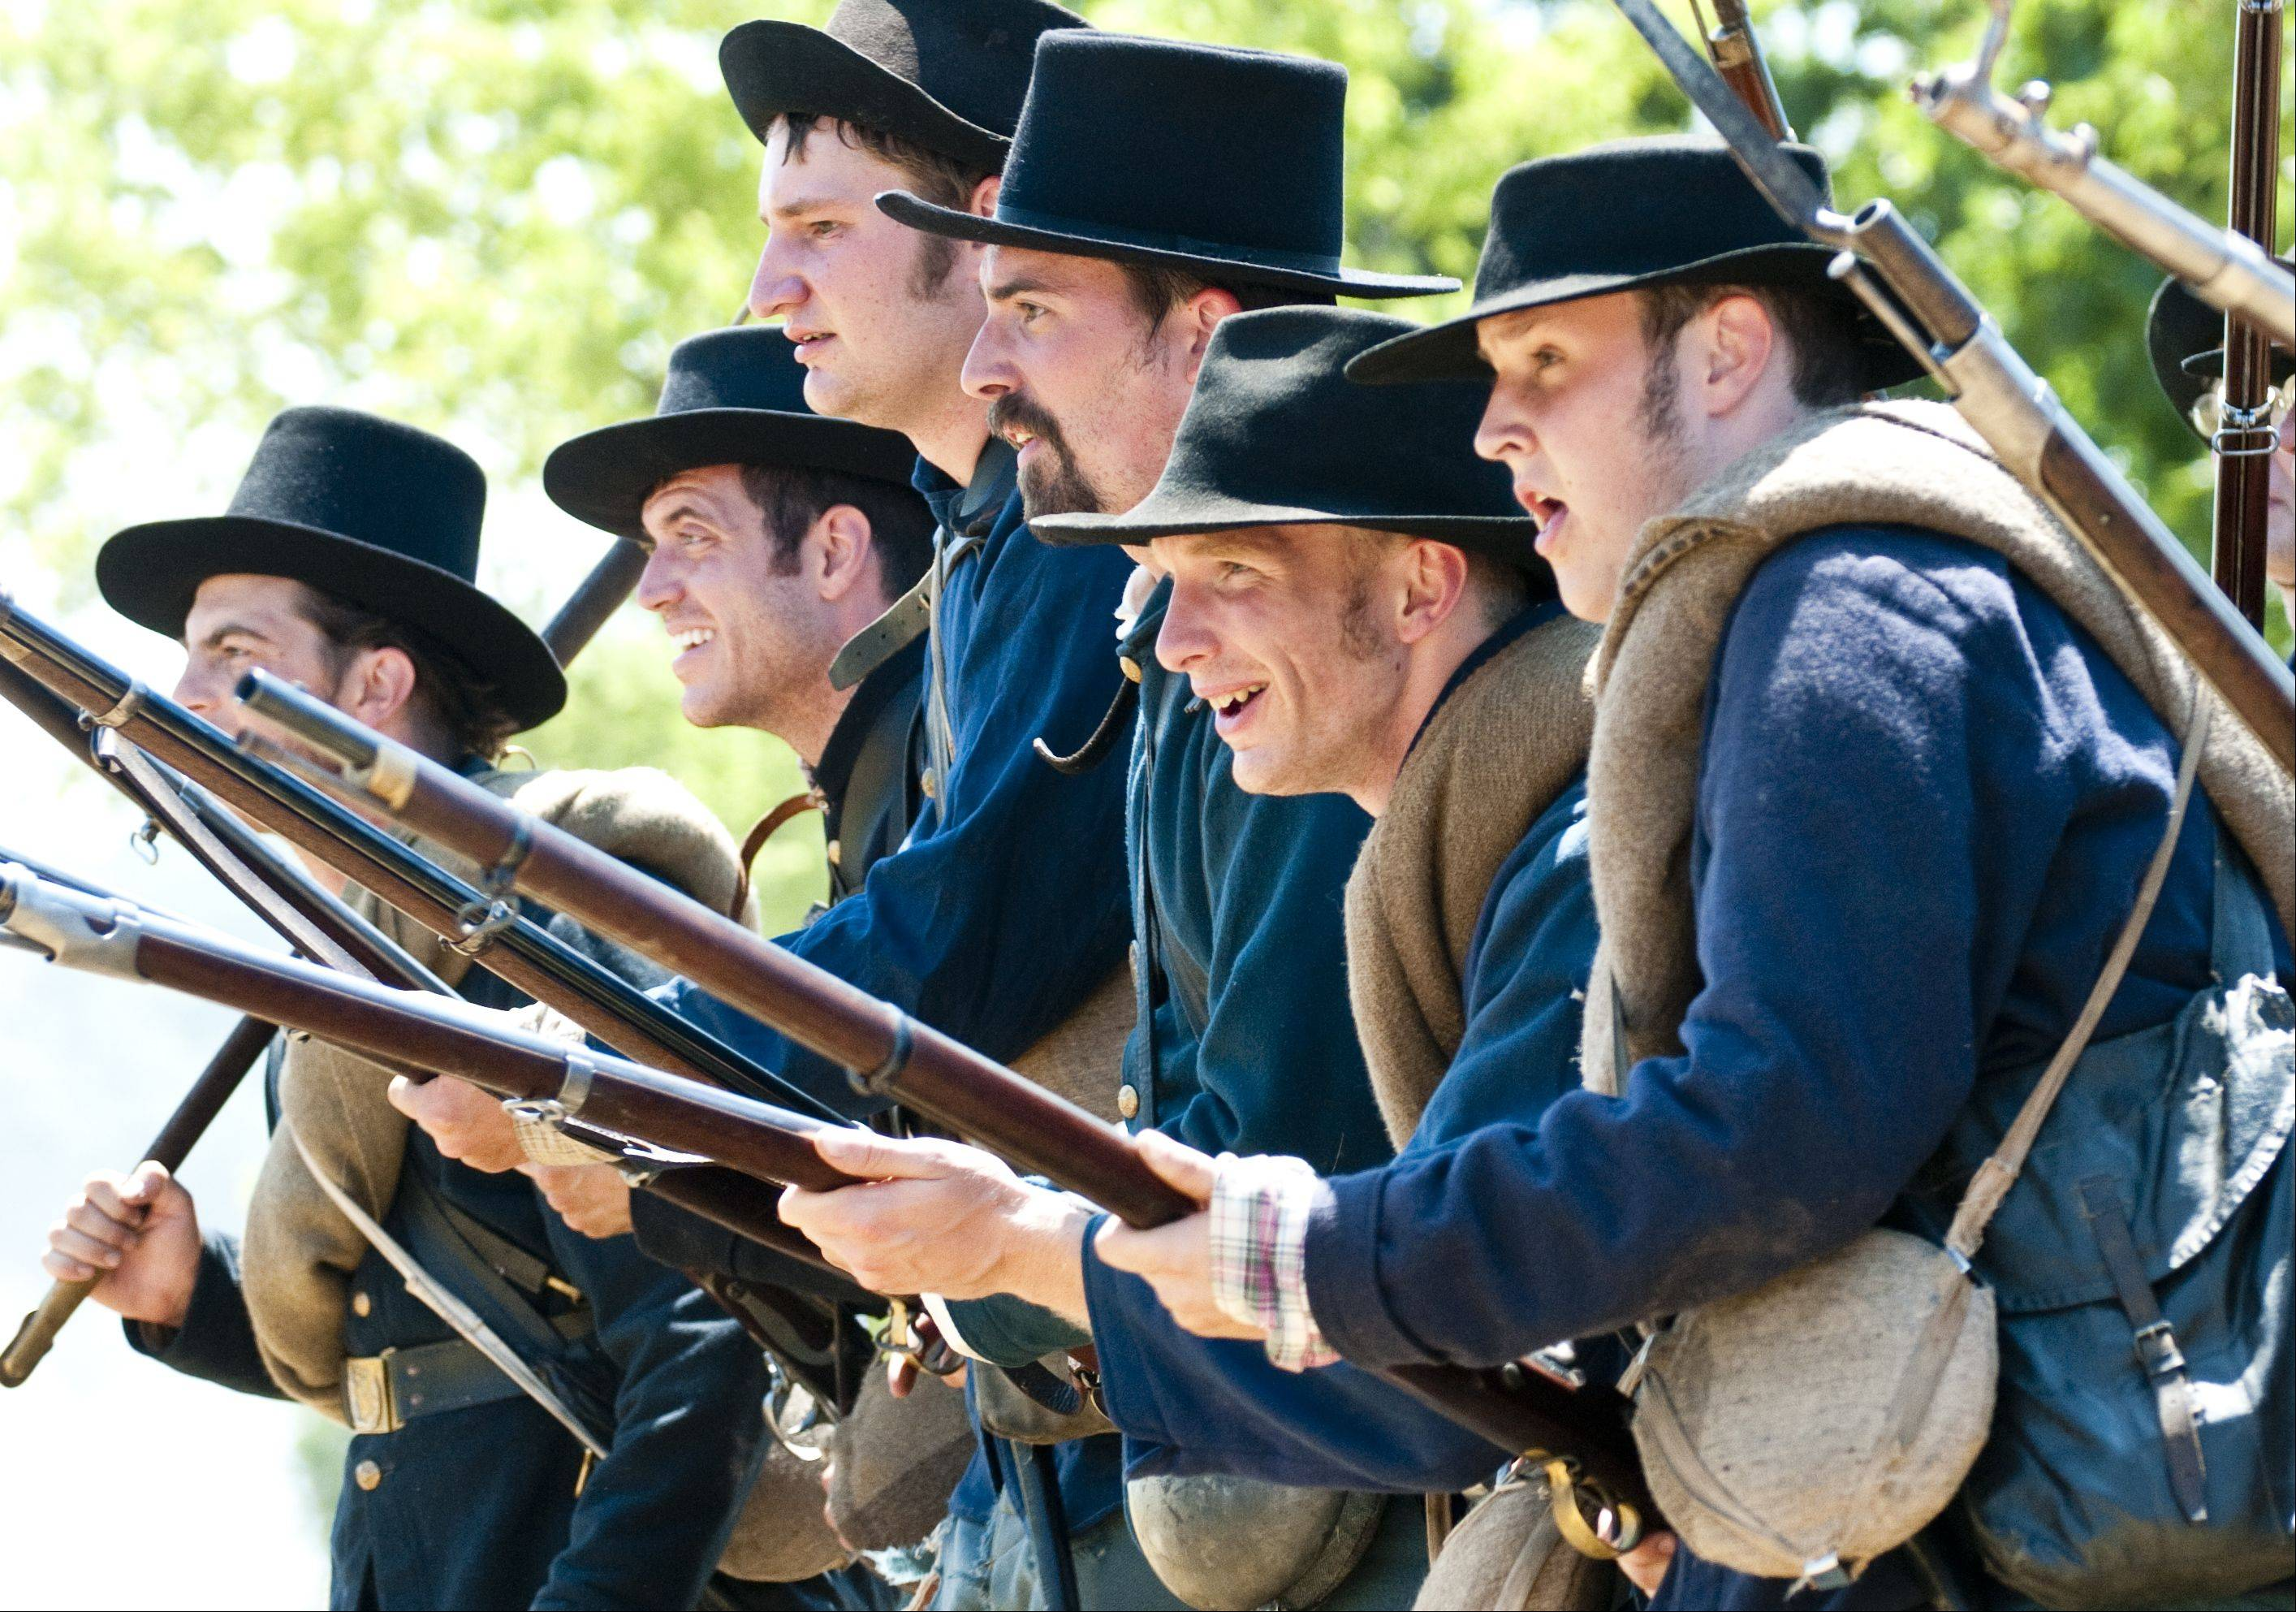 Union soldiers advance on a Confederate dispatch during Civil War Days Sunday in the Lakewood Forest Preserve near Wauconda. The hourlong battle featured booming canon fire and extensive military maneuvering across the fields of the preserve.